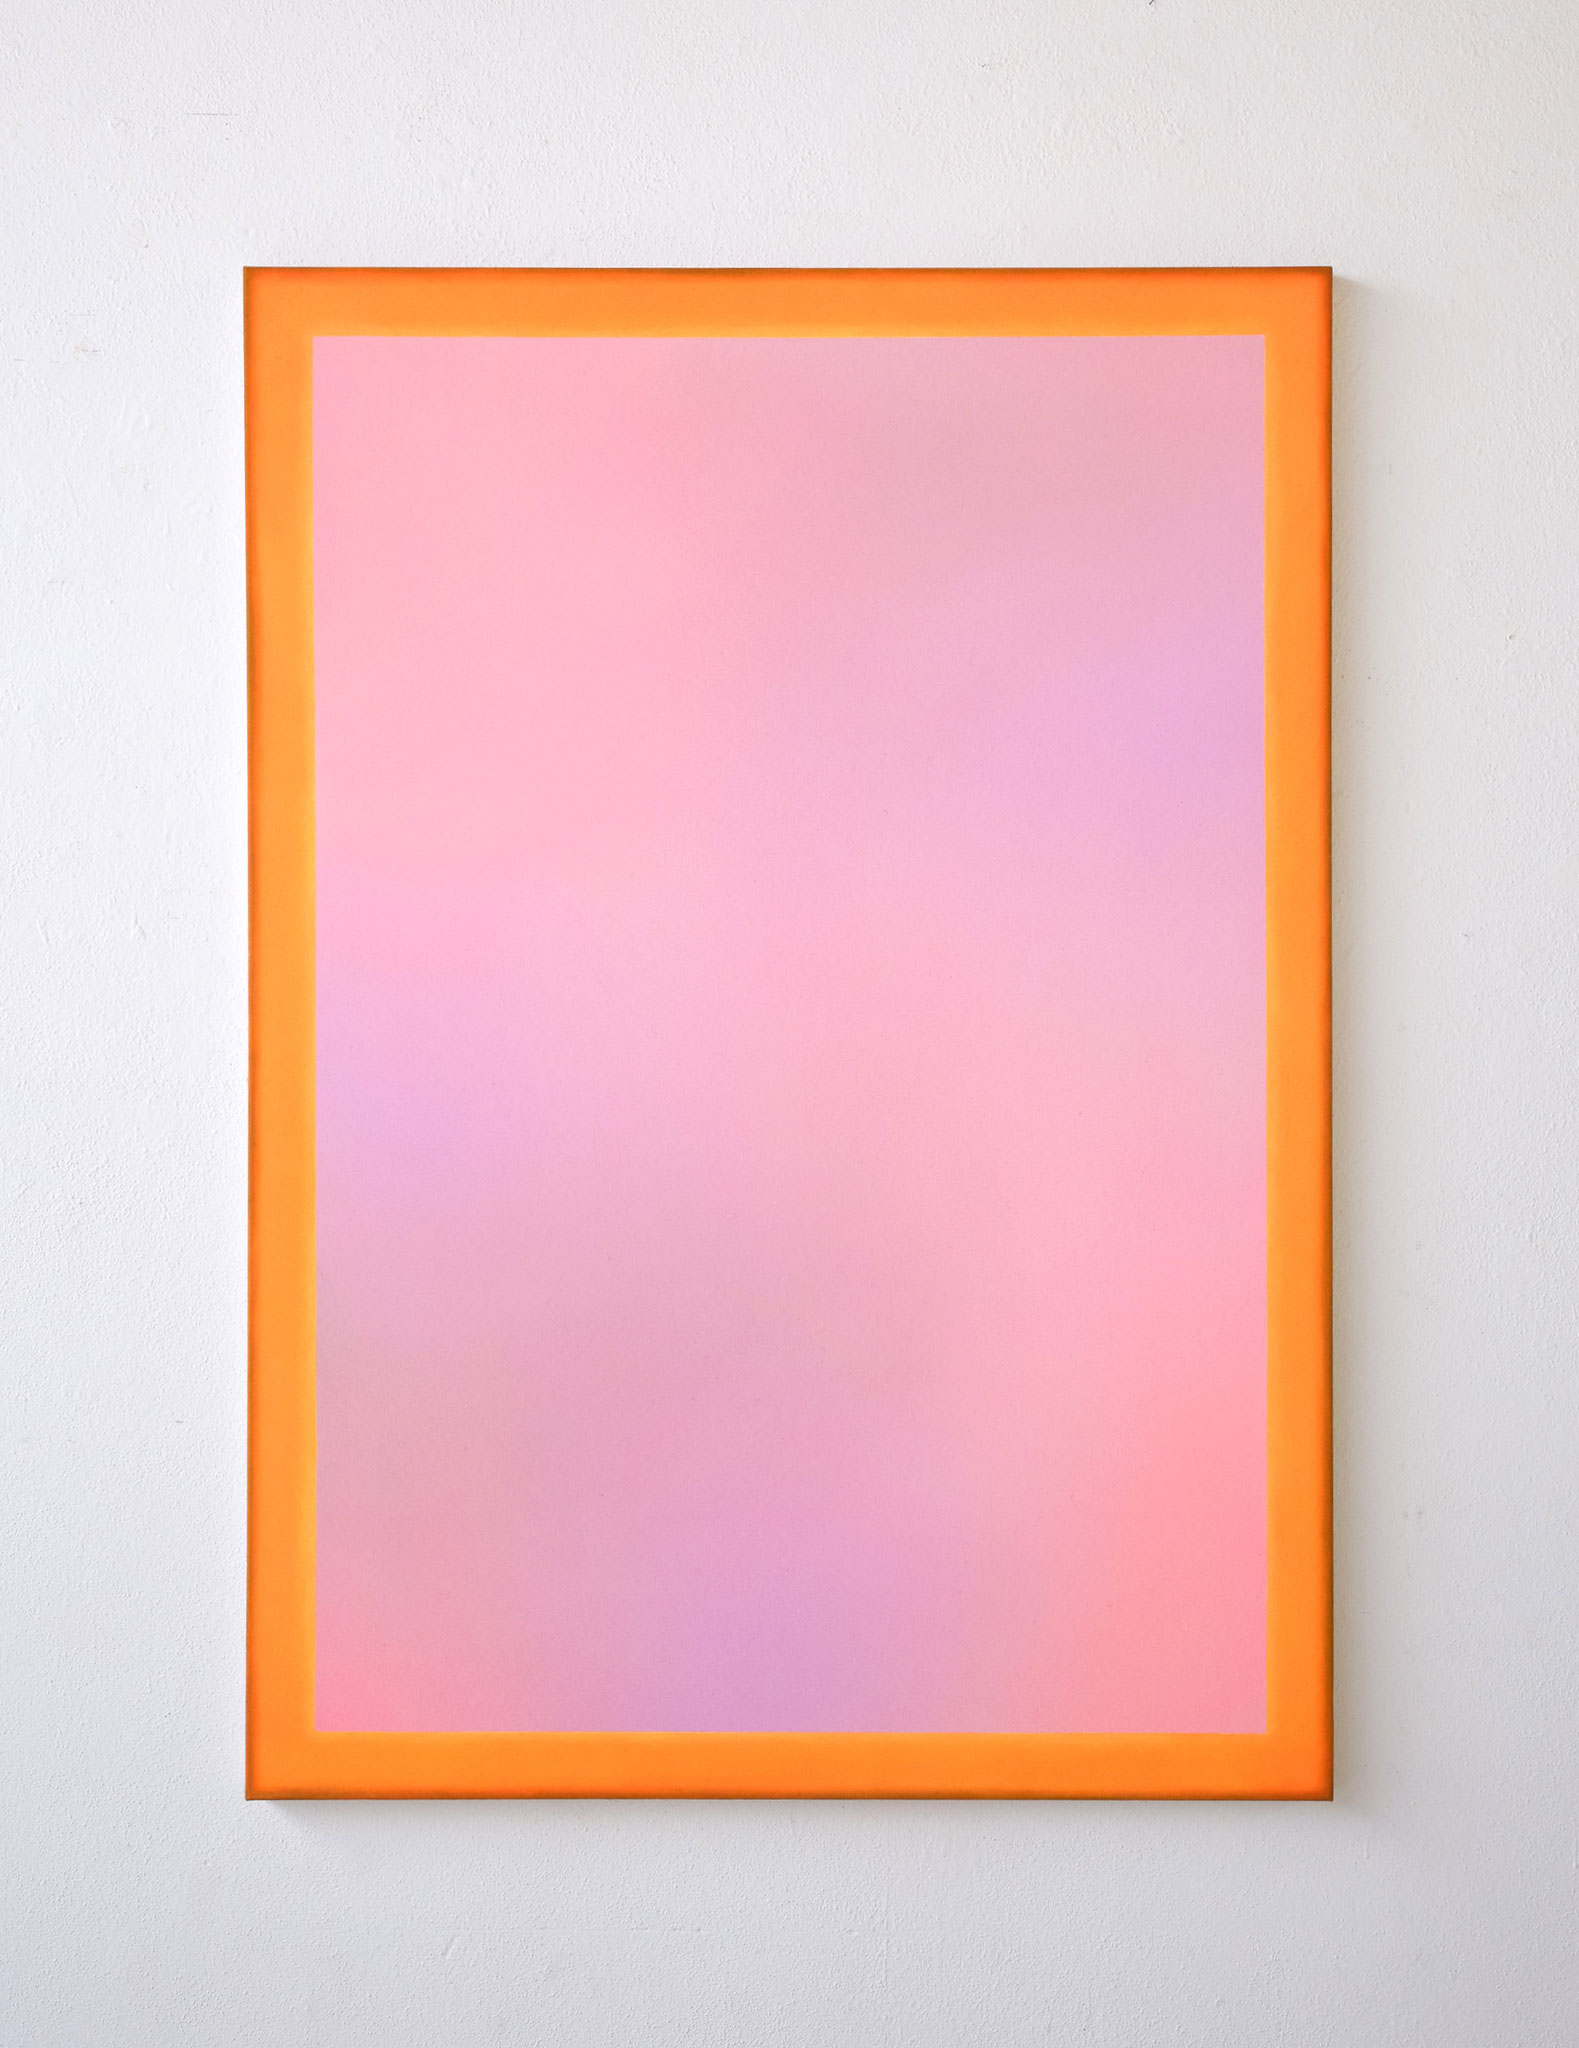 "Alina Birkner ""Untitled (Rose and Orange)"" 2019, 170x120 cm, Acrylic on Canvas"